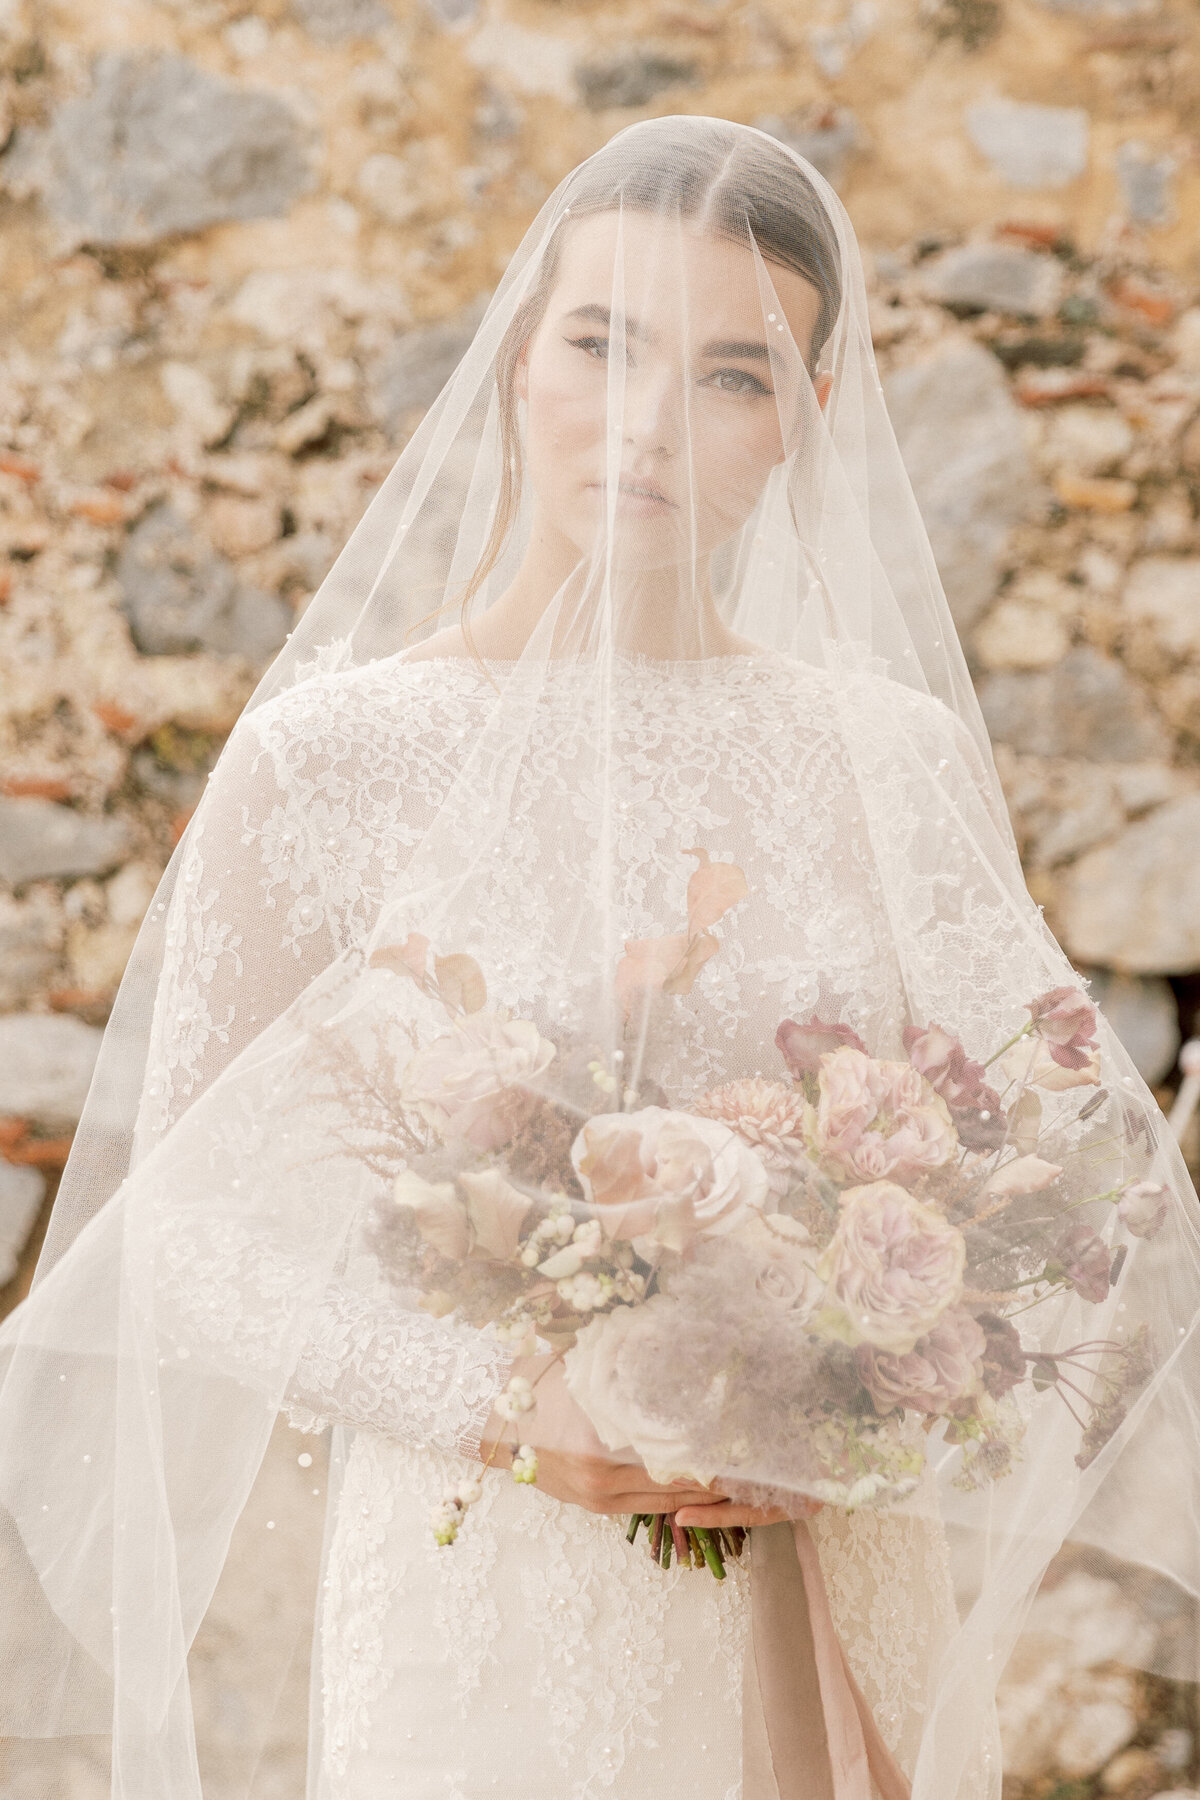 Bridal Portrait Editorial Photoshoot in Greece 10